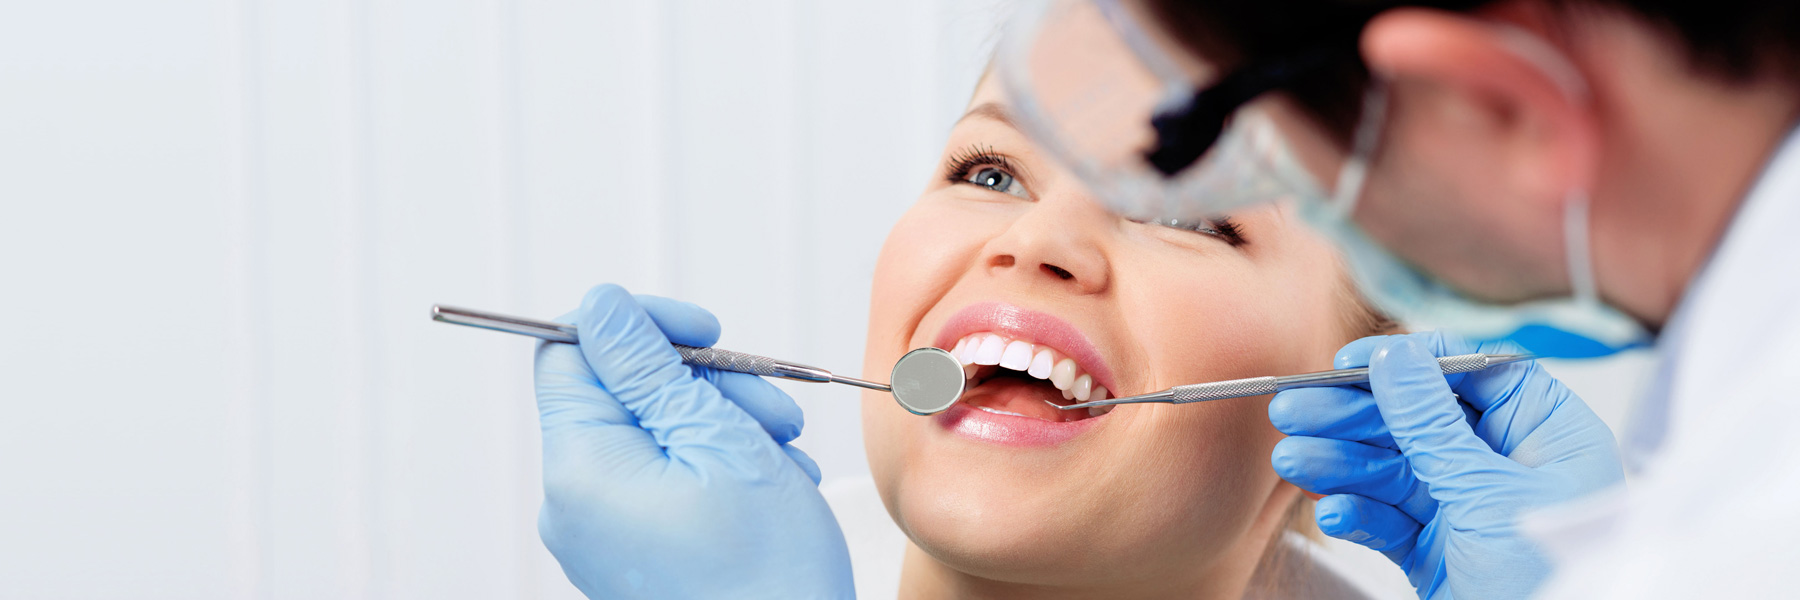 provide exceptional dental treatment - HD1932×950